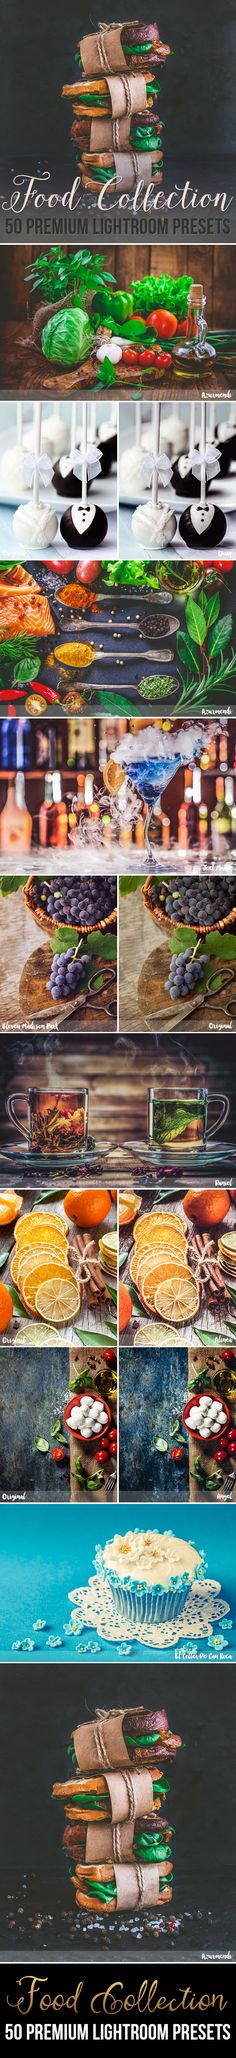 50 Premium Food Photography Lightroom Presets - Lightroom Presets Add-ons